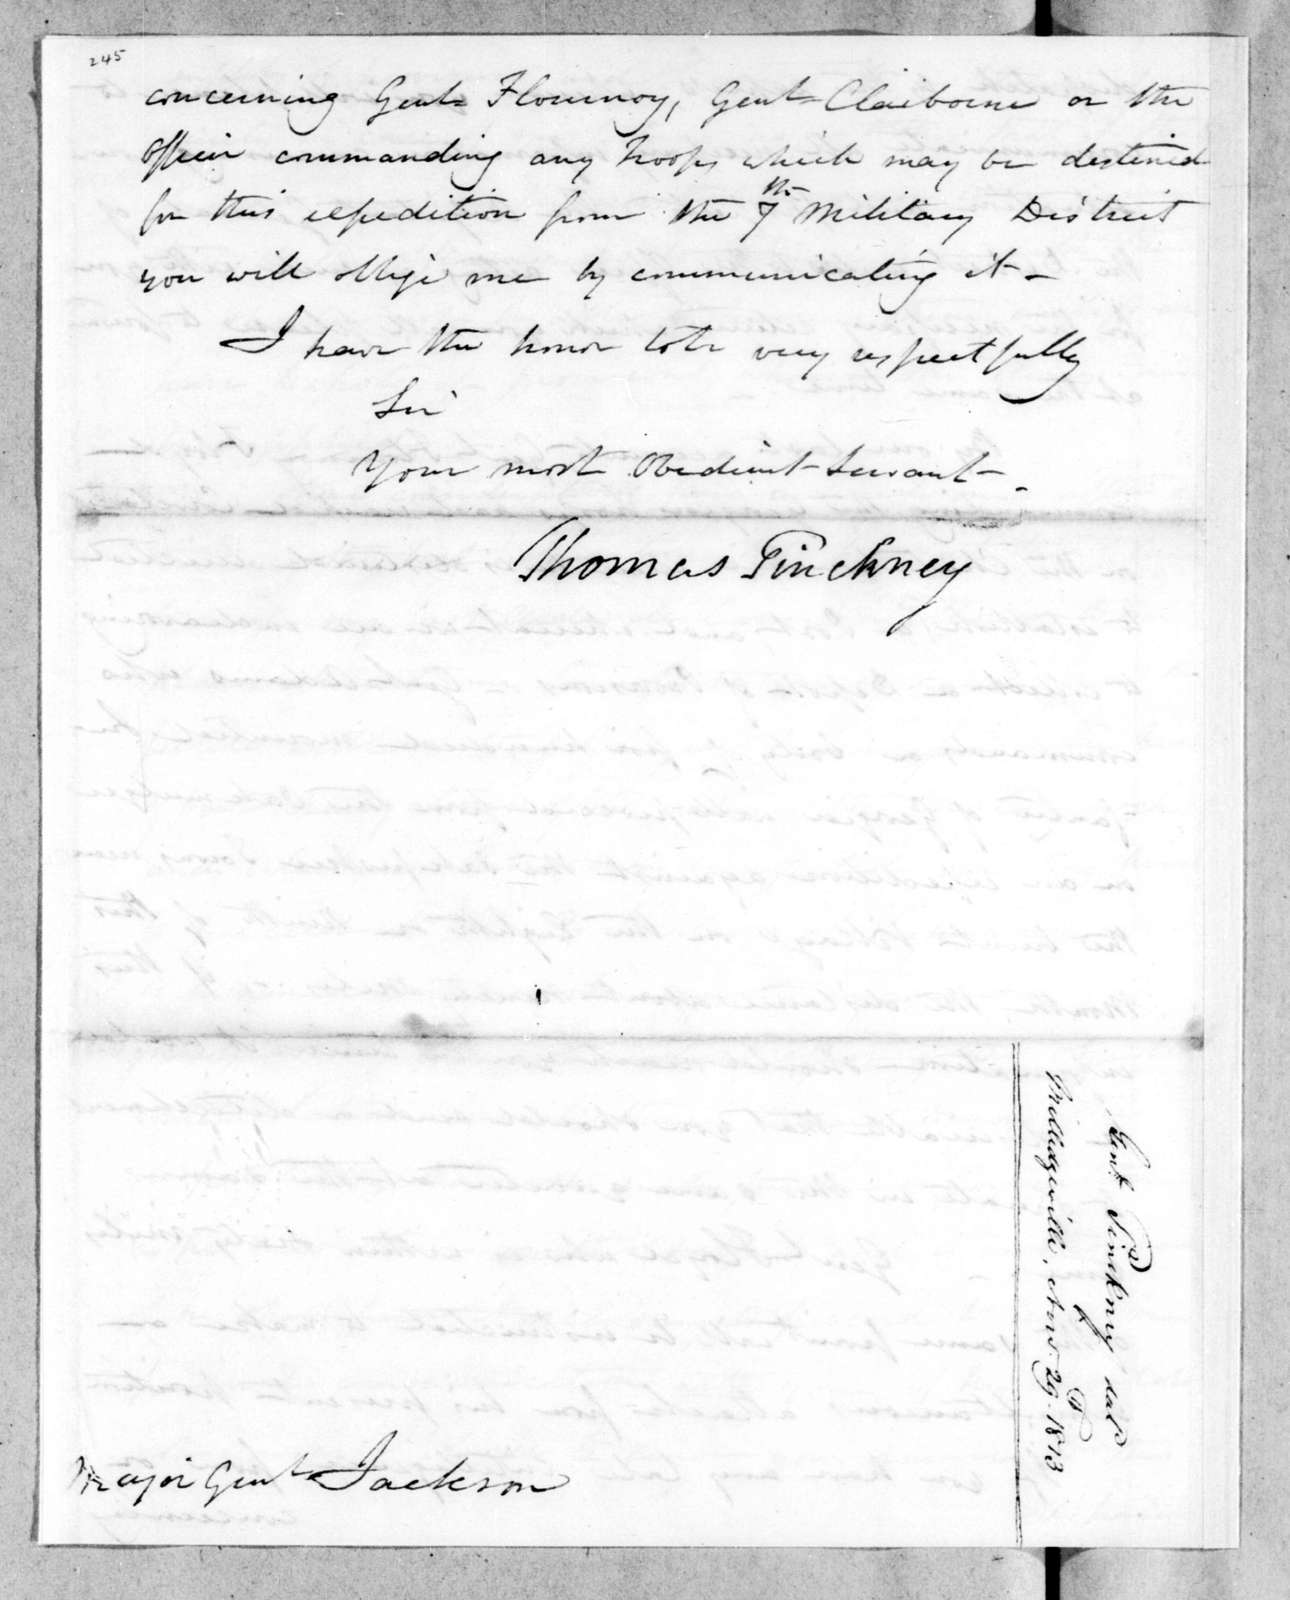 Thomas Pinckney to Andrew Jackson, November 29, 1813